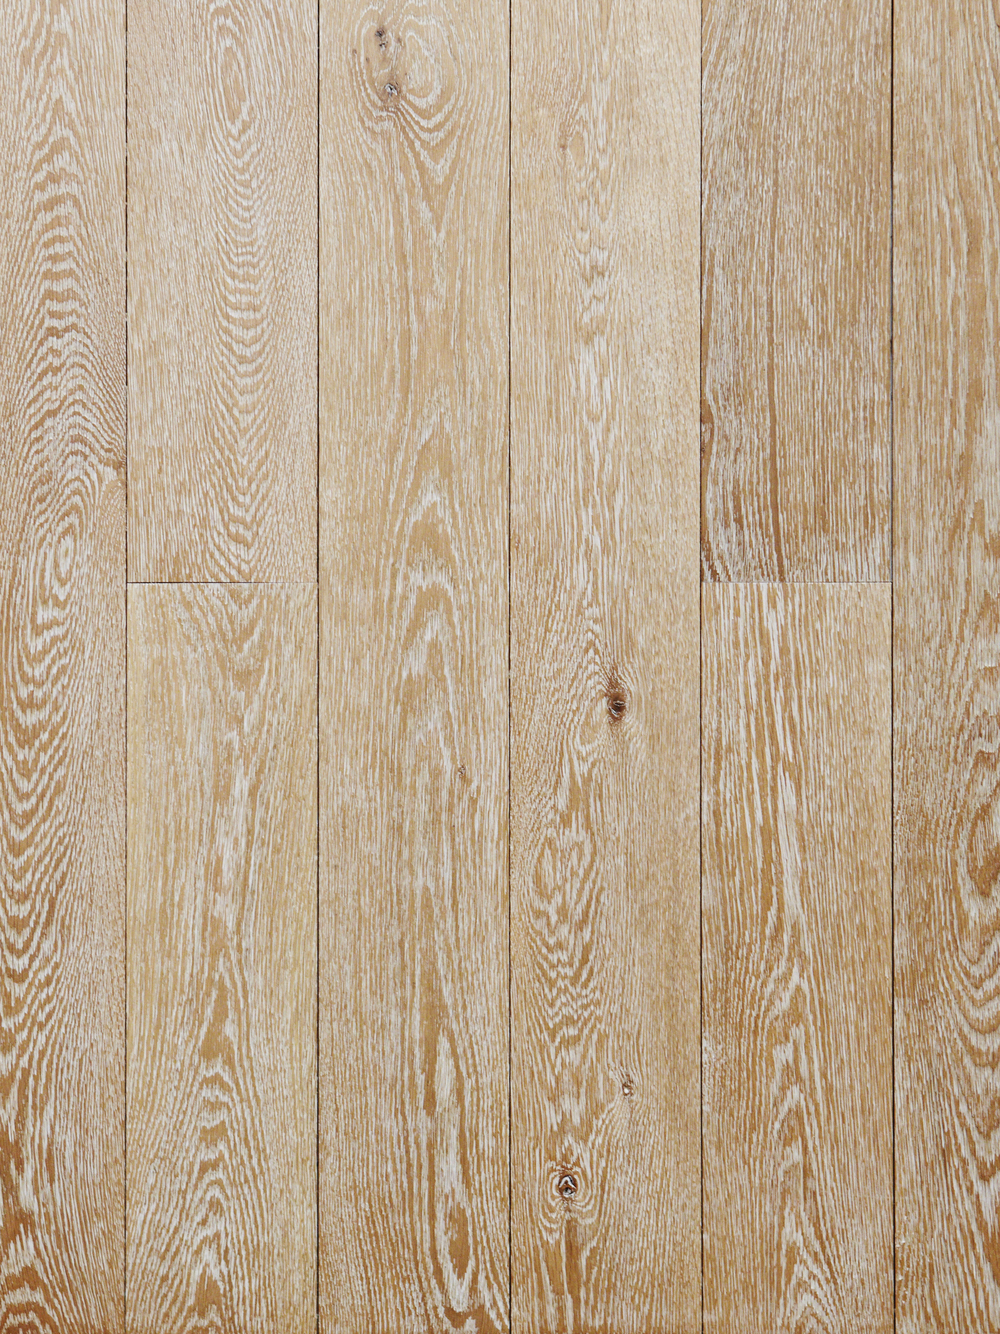 Select Harvest White Oak Hardwood Flooring [Cerused Finish]